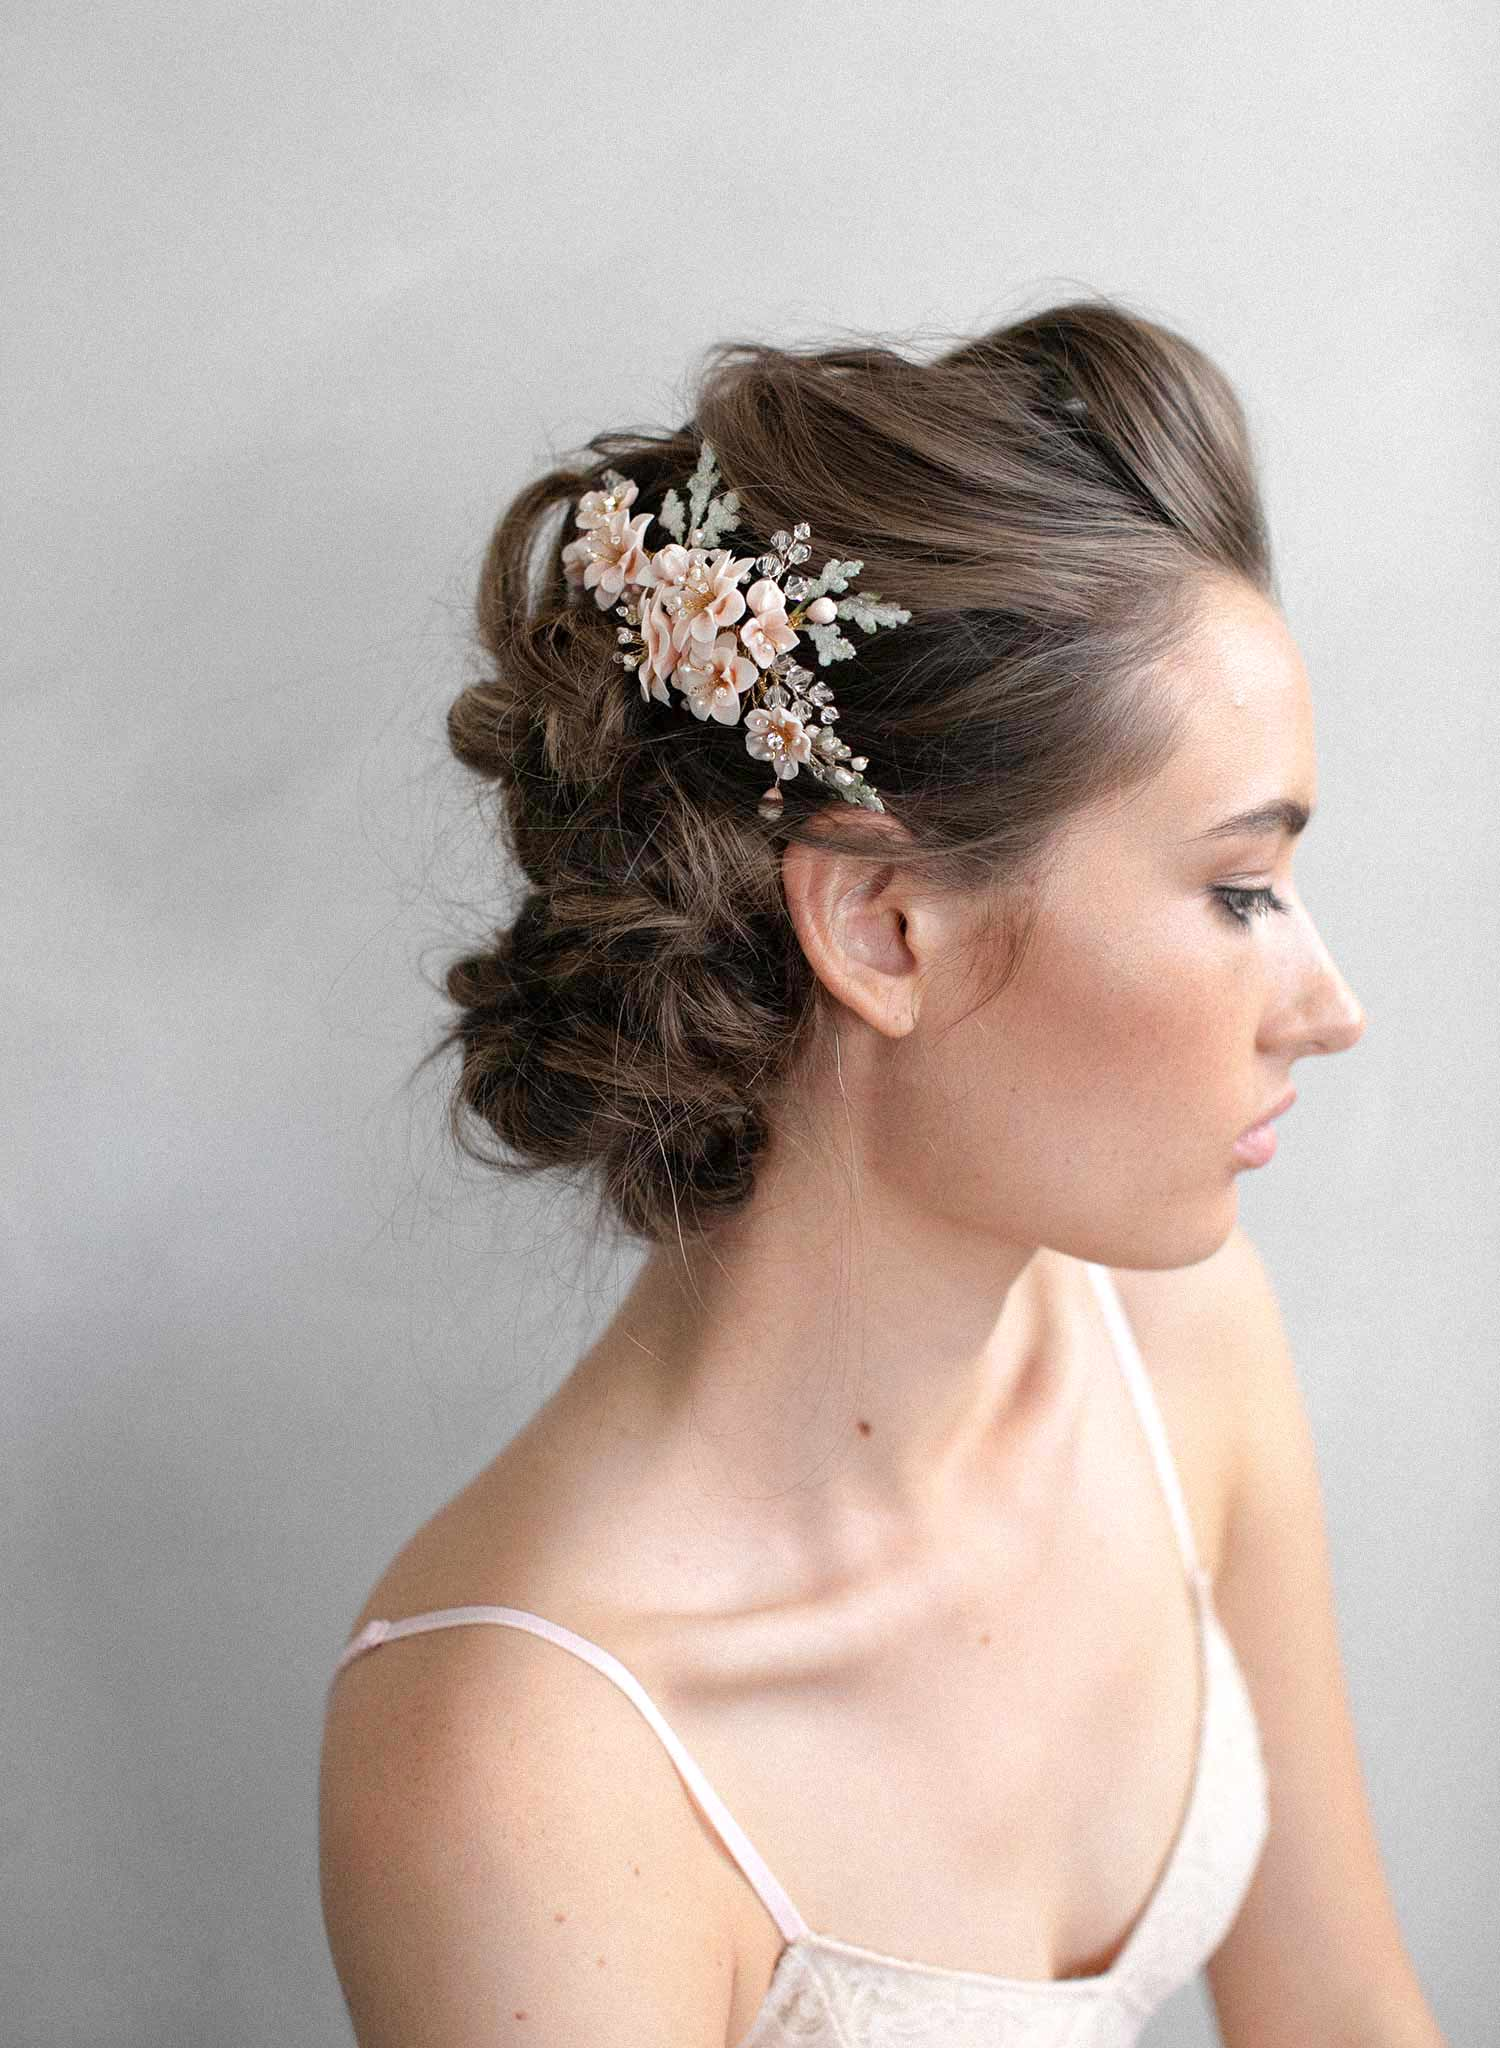 Blossom garden hair comb - Style #940